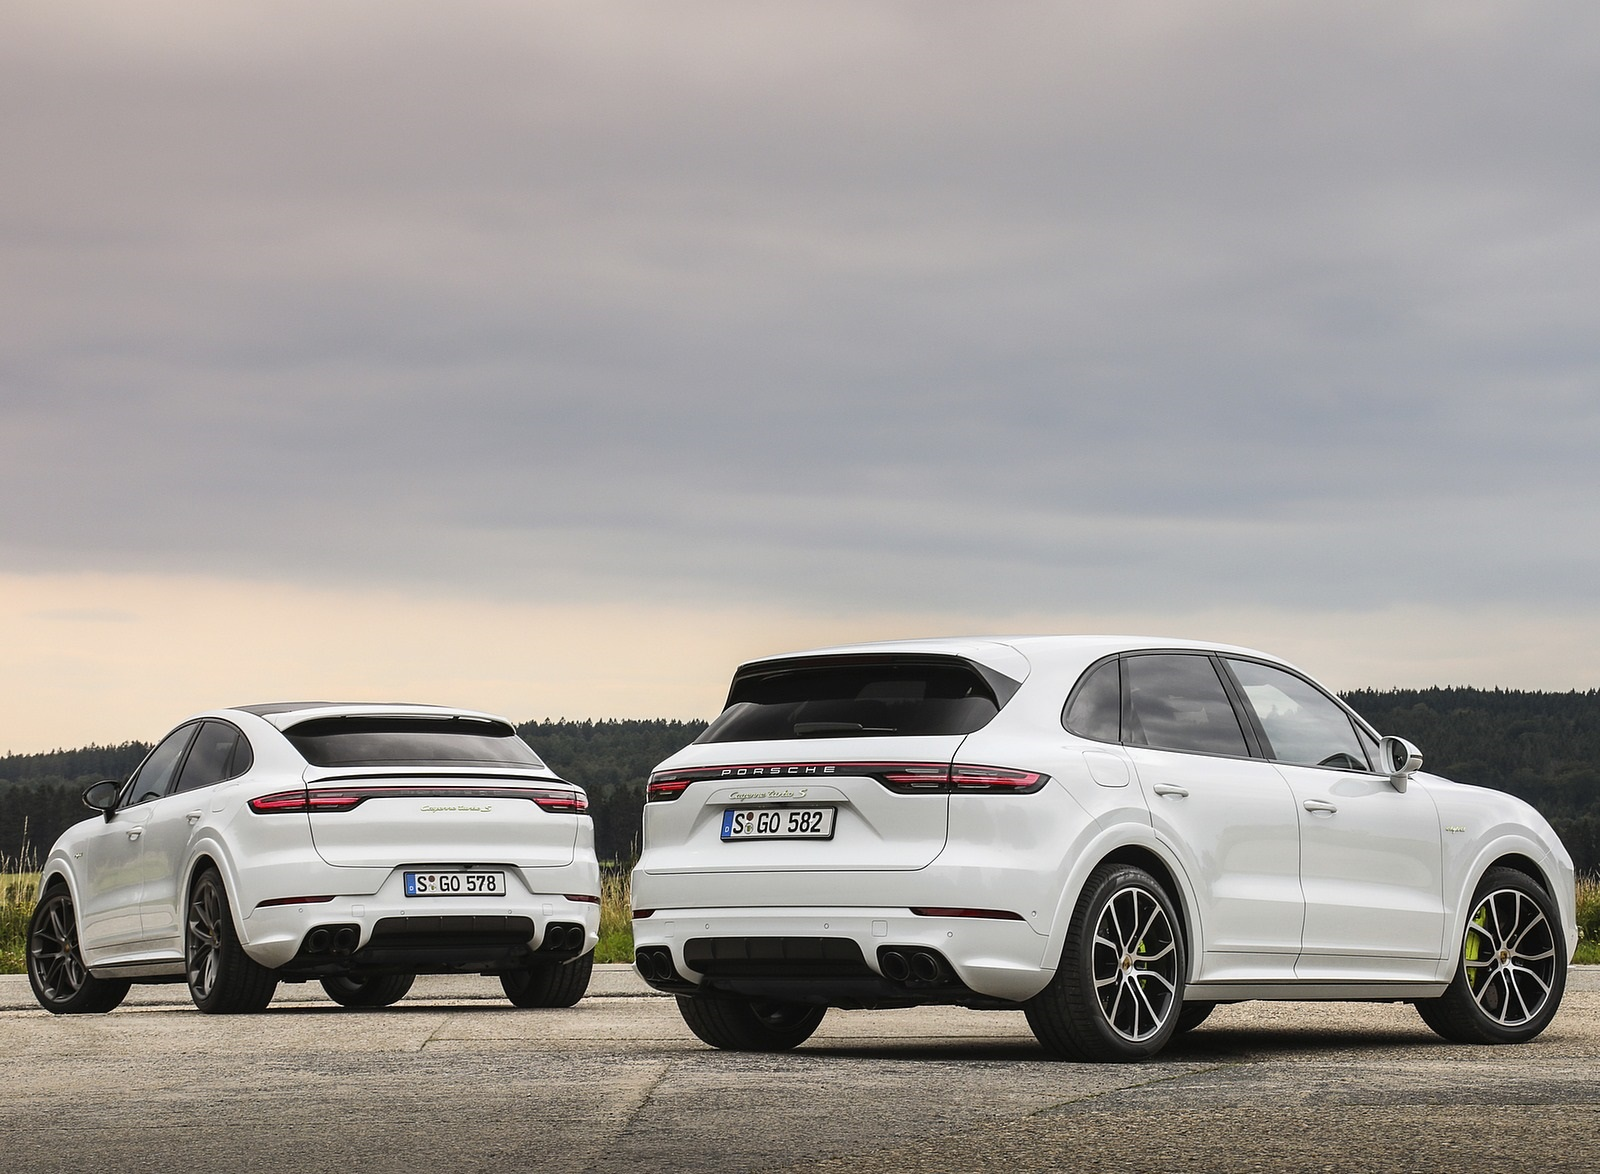 2020 Porsche Cayenne Turbo S E Hybrid And Cayenne Turbo S E Hybrid Coupe Wallpapers 38 Newcarcars